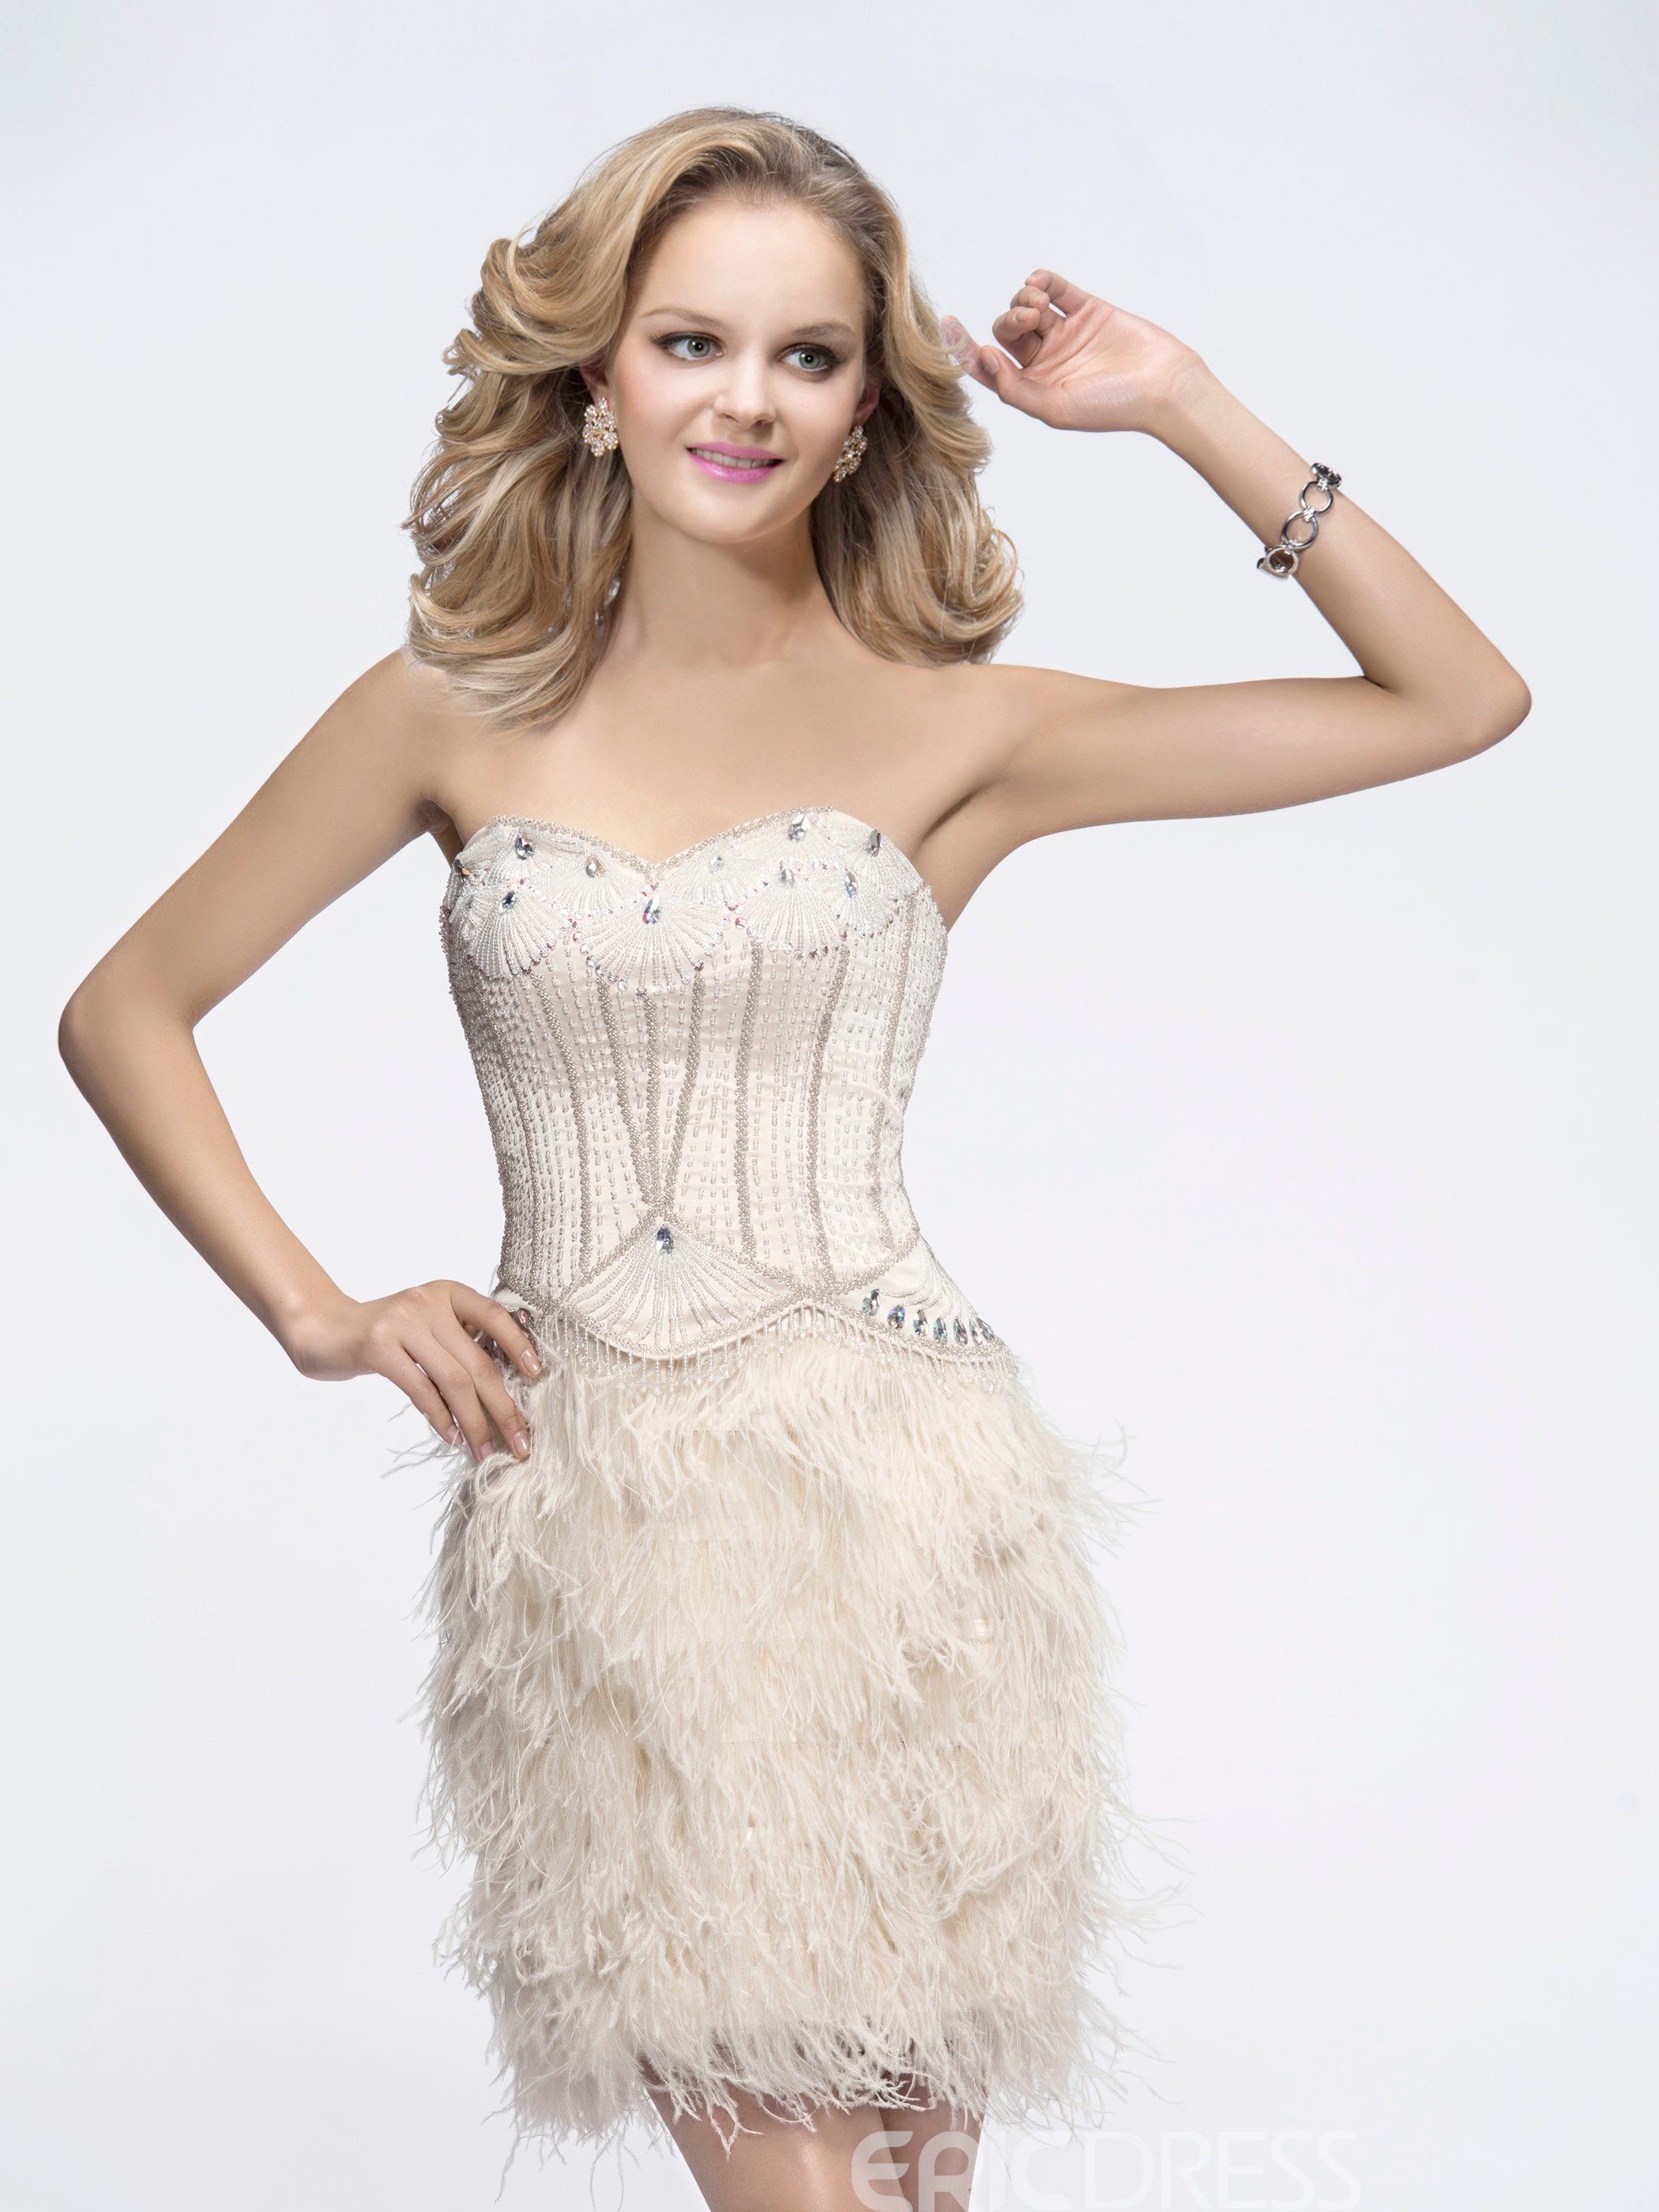 Fascinating Sweetheart Neckline Beading Feathers Comely Cocktail Dress